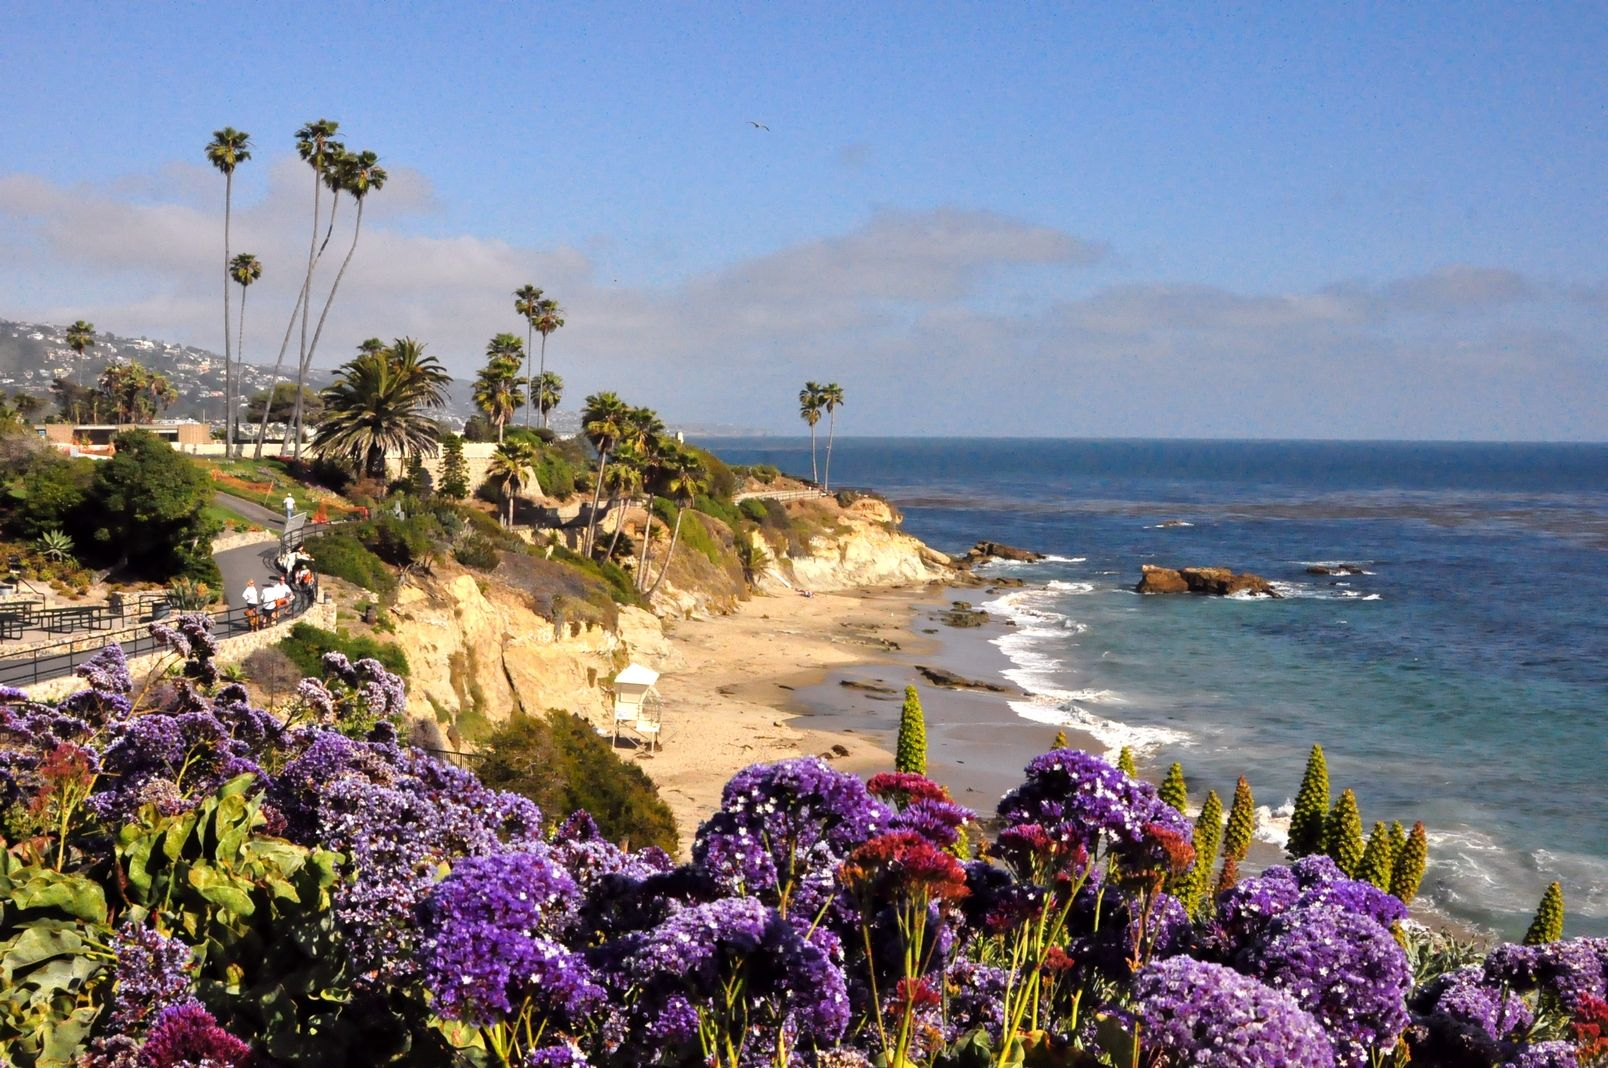 Laguna beach most beautiful coastline in the world for Pretty beaches in california